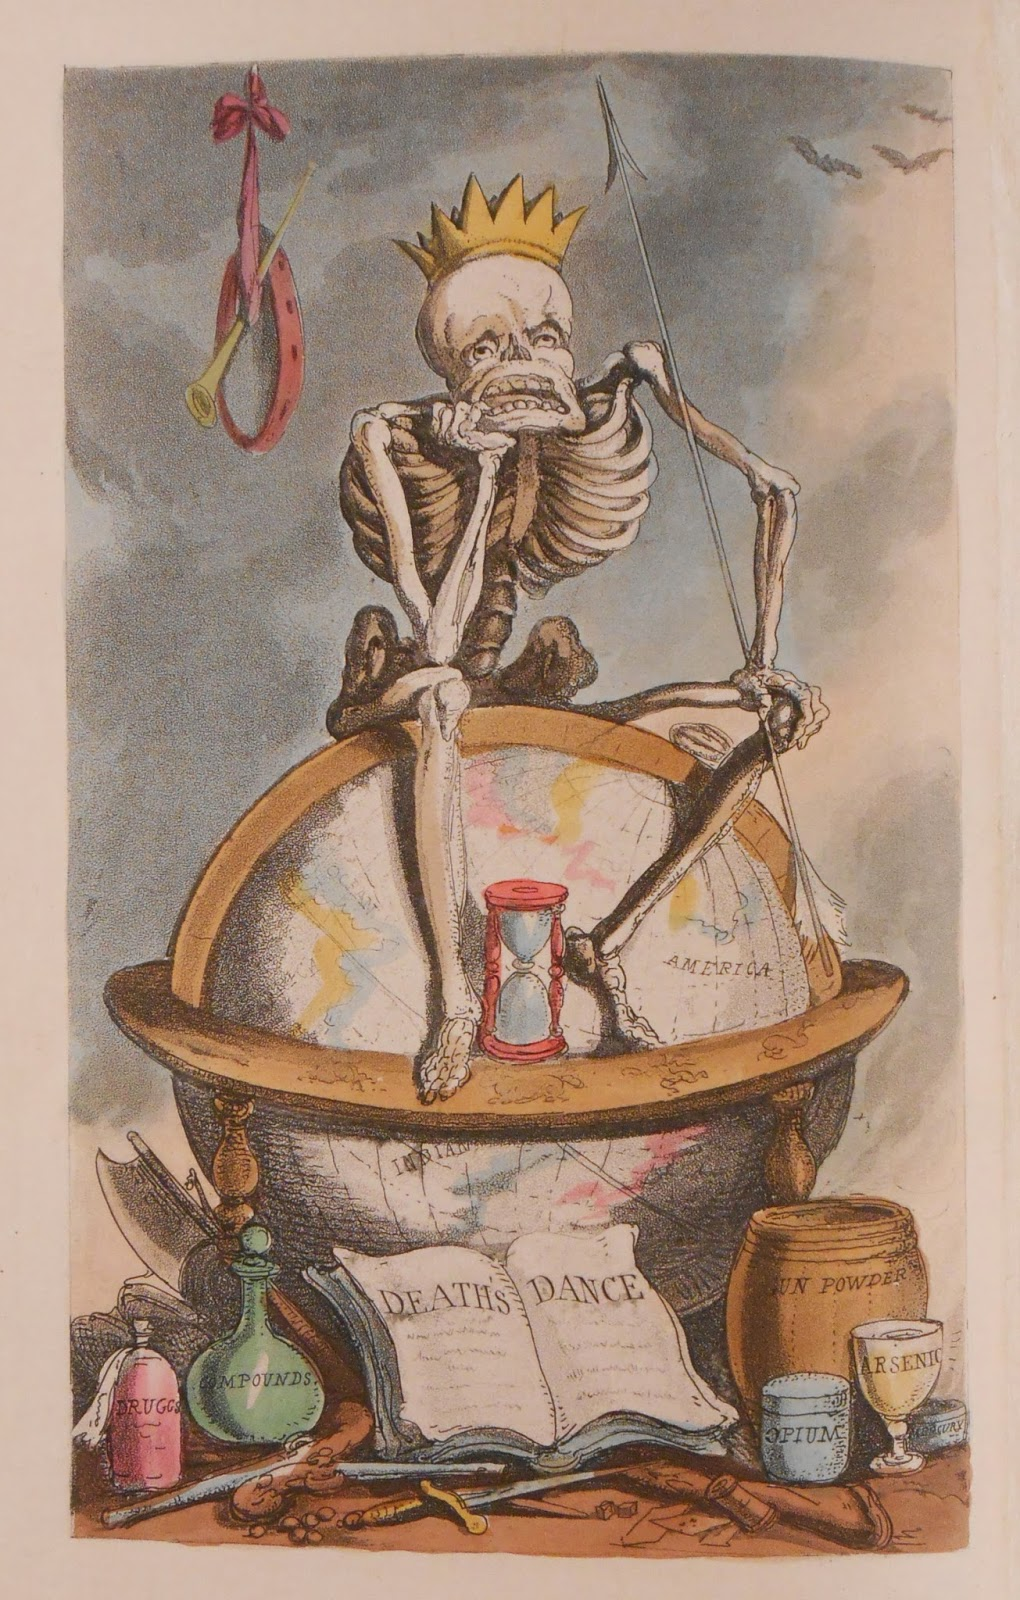 A detailed, color illustration of a crowned skeleton, slumped in a seated position on a globe.